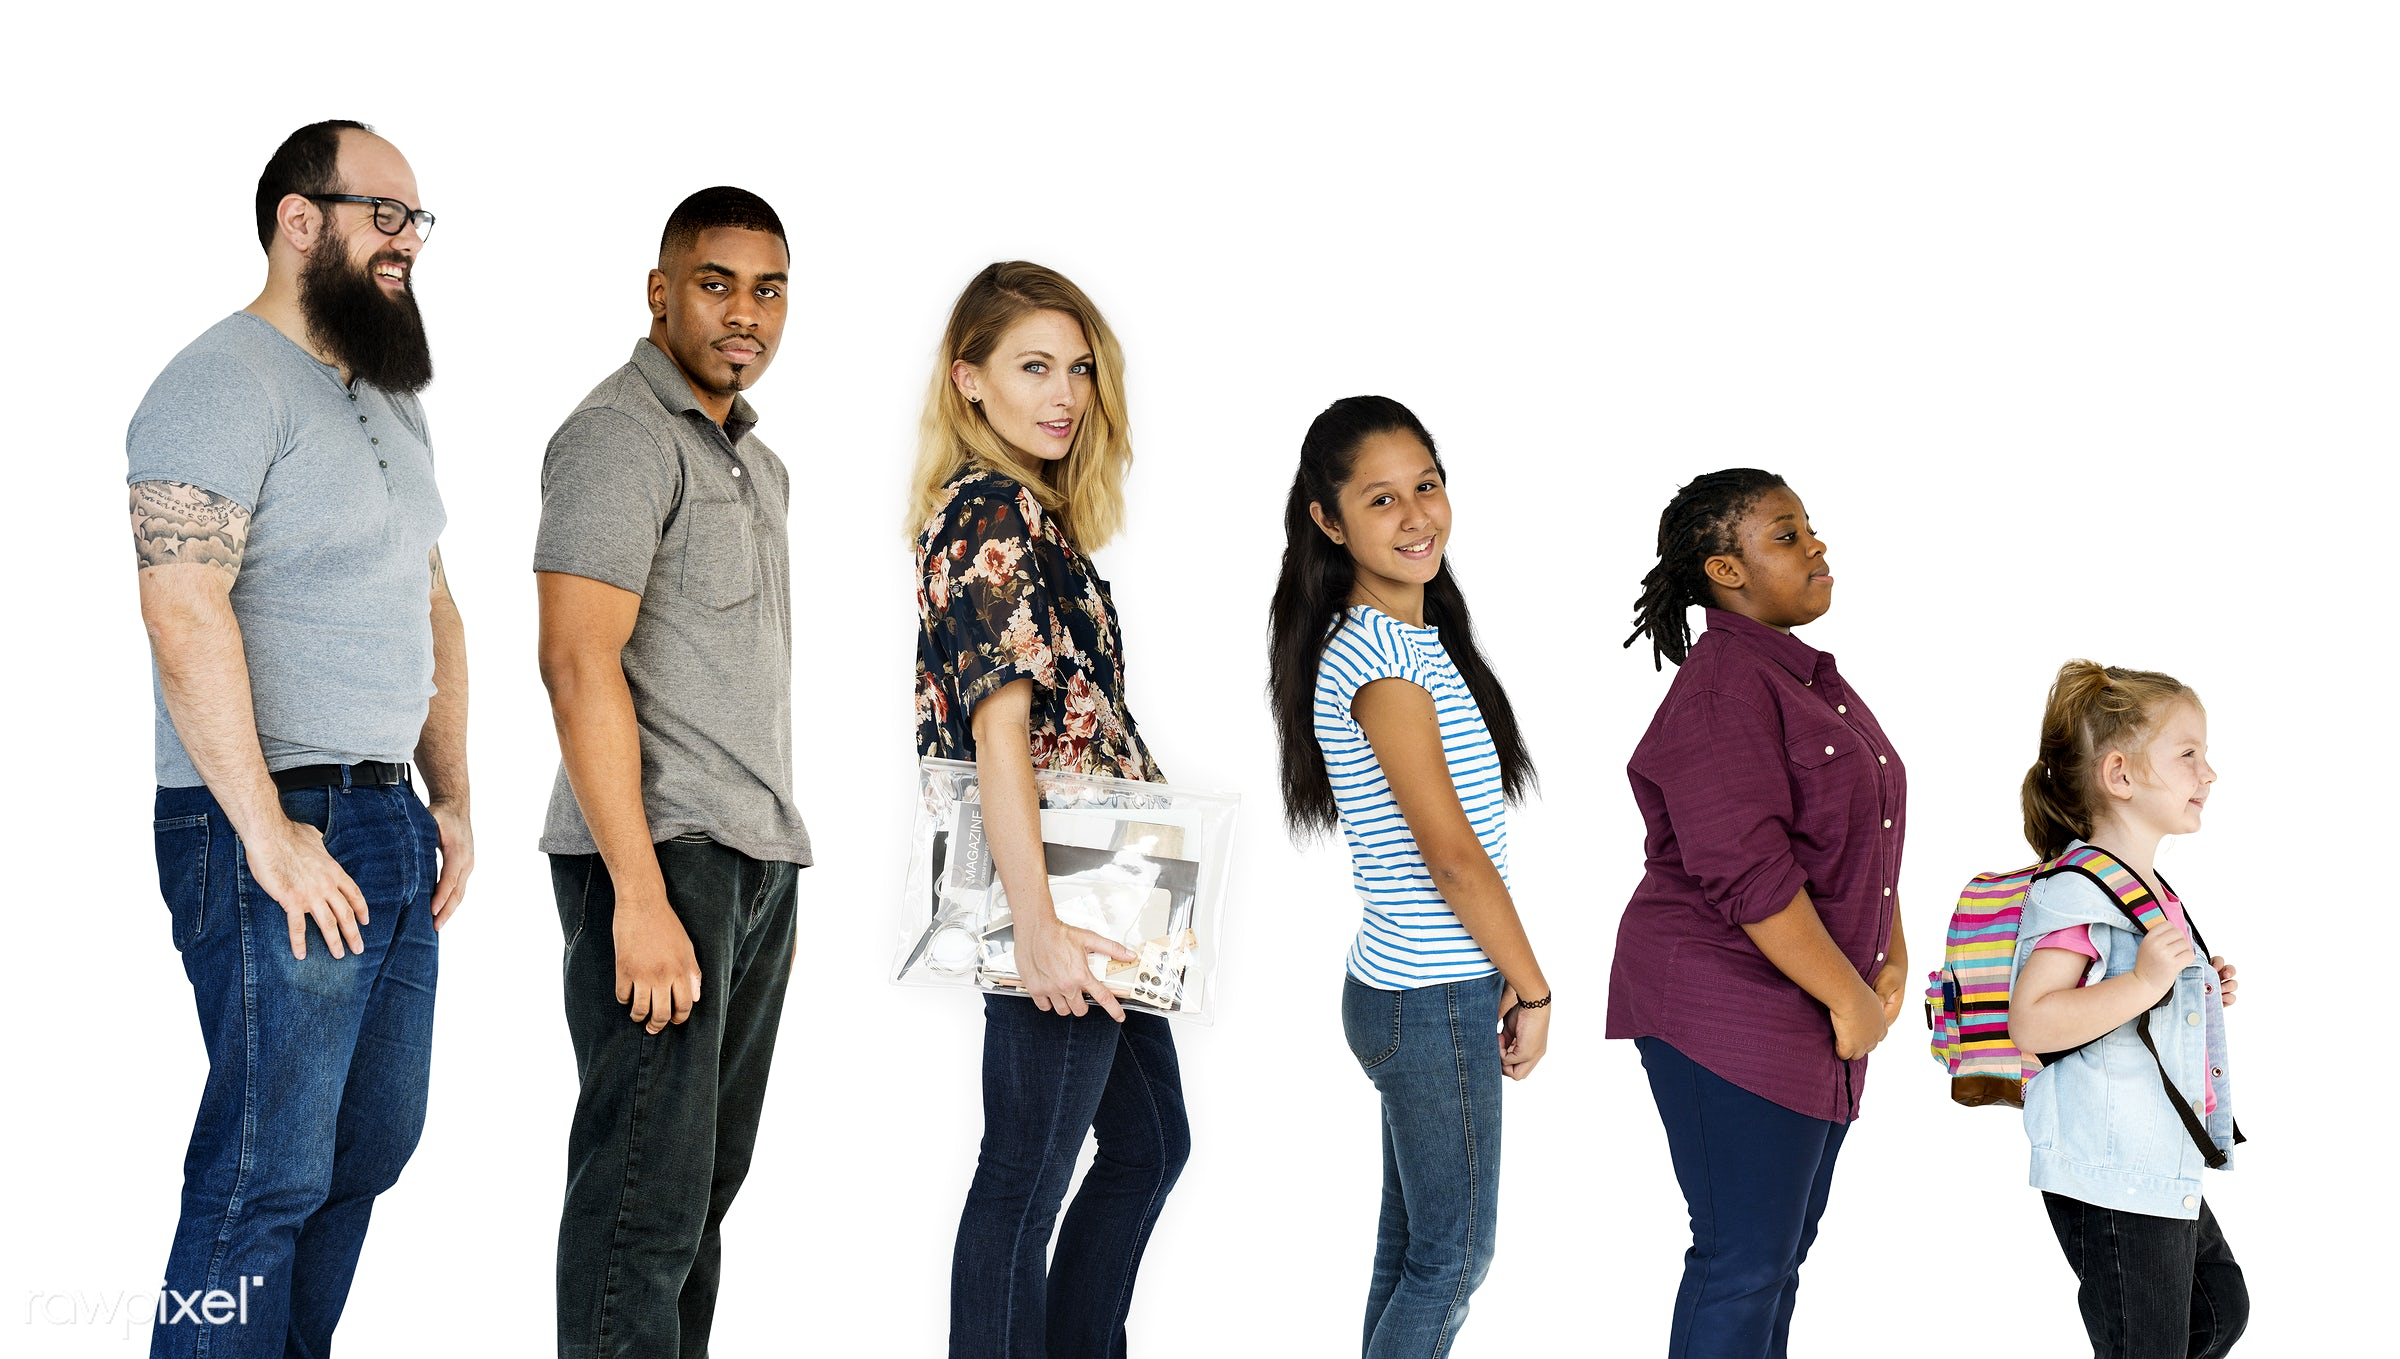 studio, person, diverse, people, race, attraction, together, asian, caucasian, young adult, woman, lifestyle, studio...